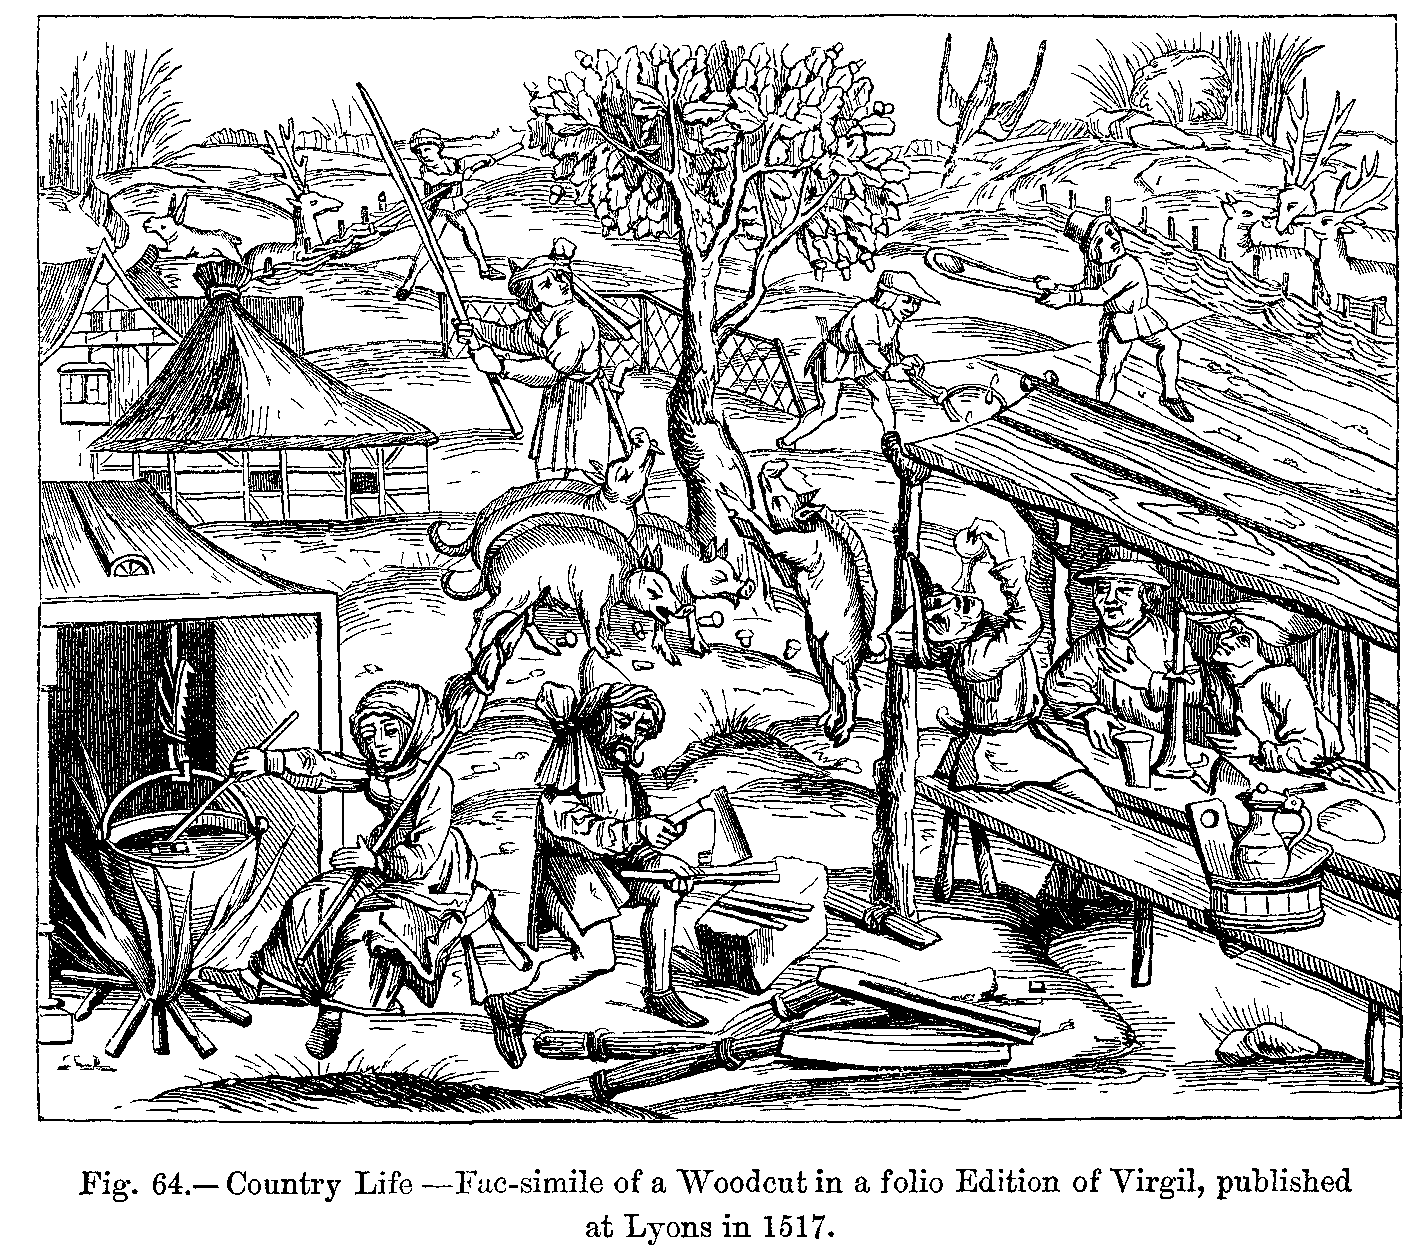 Country Life Fac Simile Of A Woodcut In A Folio Edition Of Virgil Published At Lyons In 1517 Medieval Art City Art Woodcut